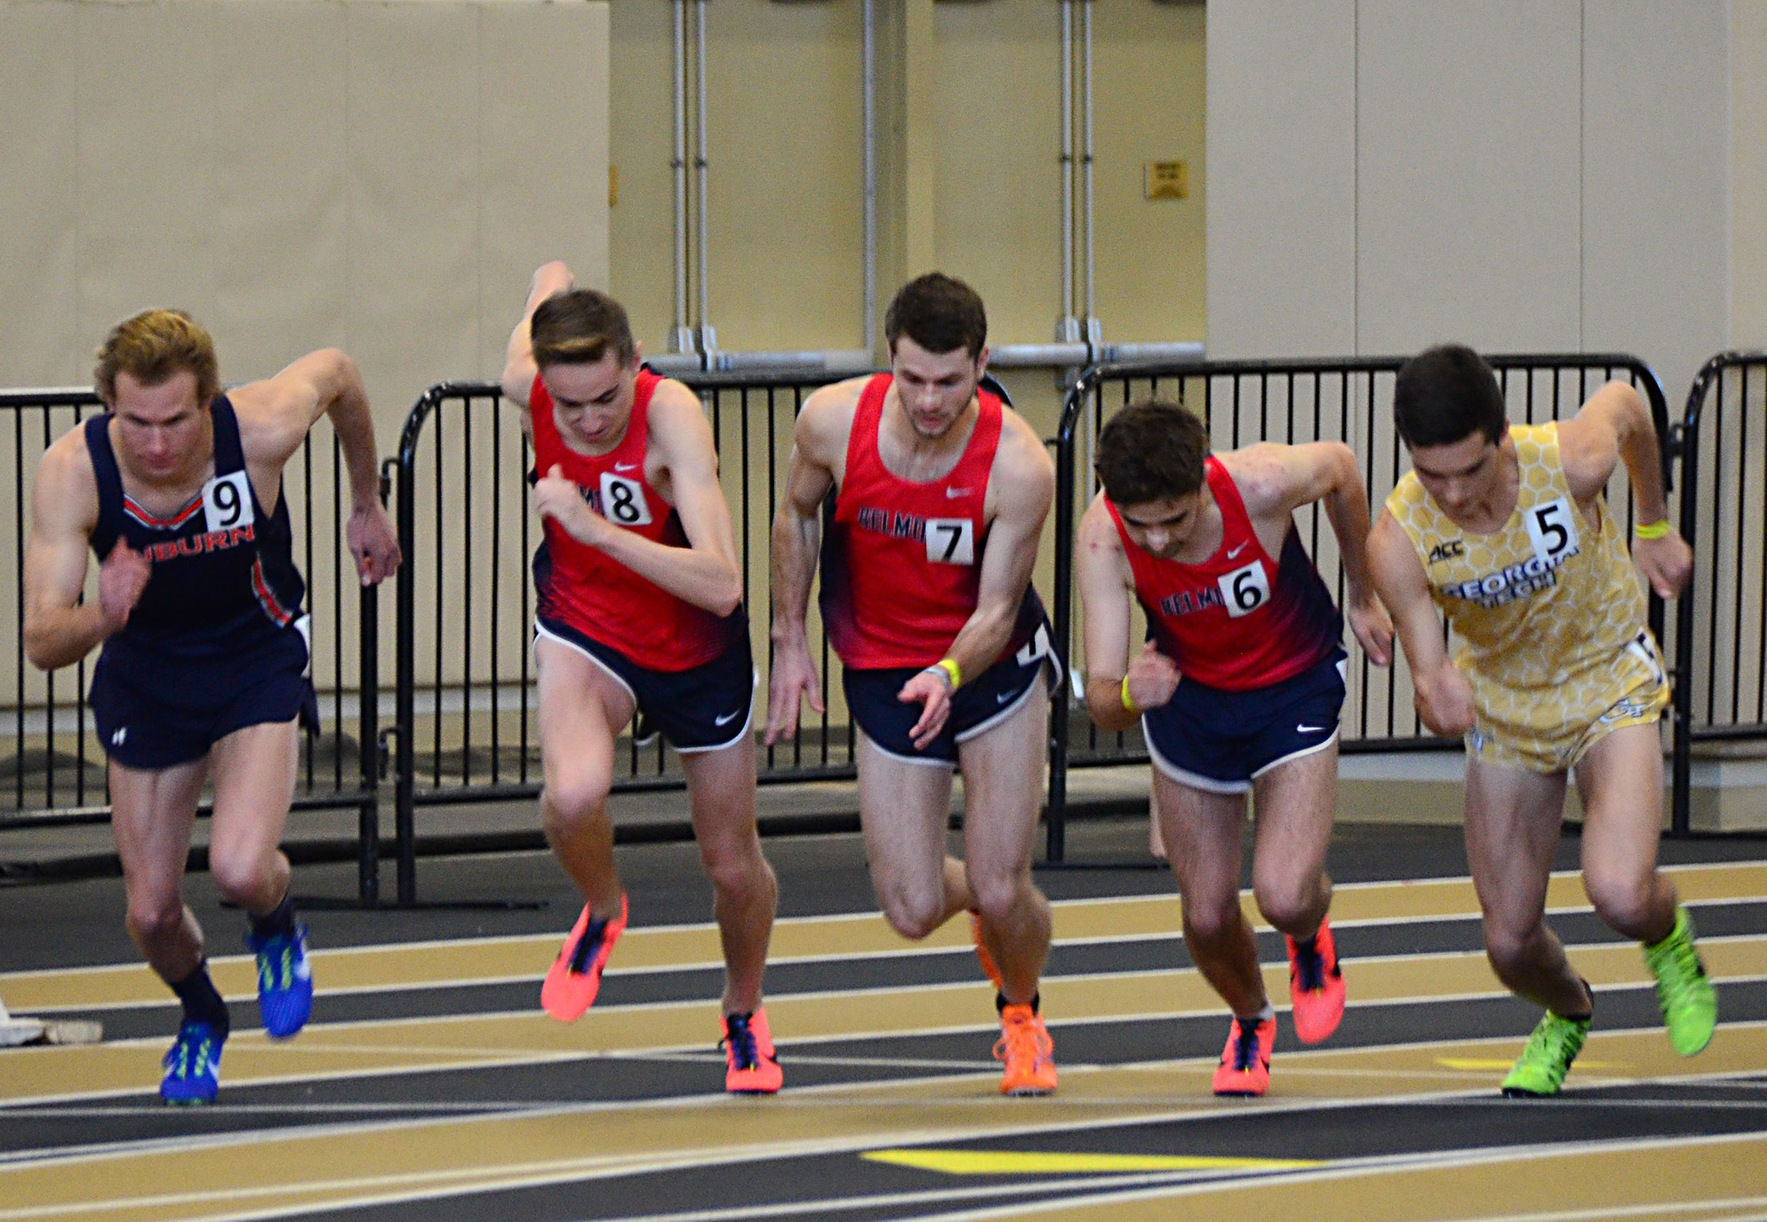 Samford Invite track meet preview